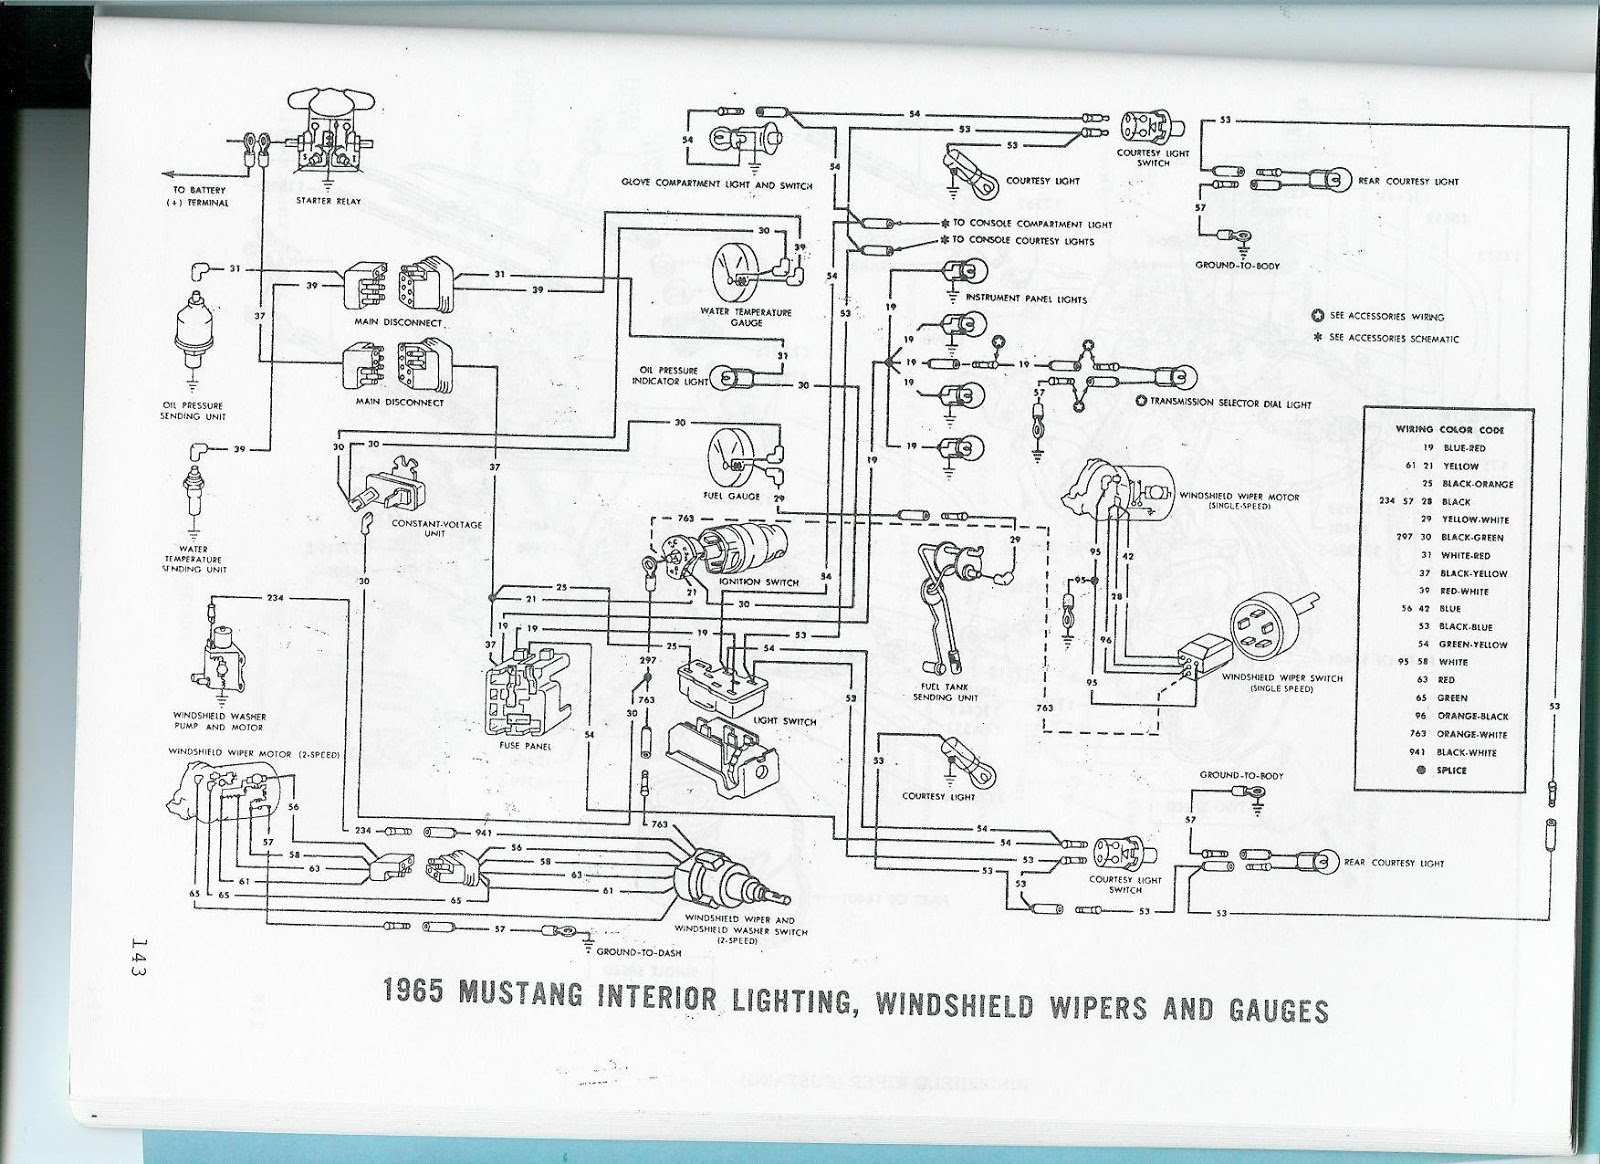 65 mustang 5 gauge cluster wiring diagram wiring diagram list 65 mustang lights wiring diagram [ 1600 x 1164 Pixel ]